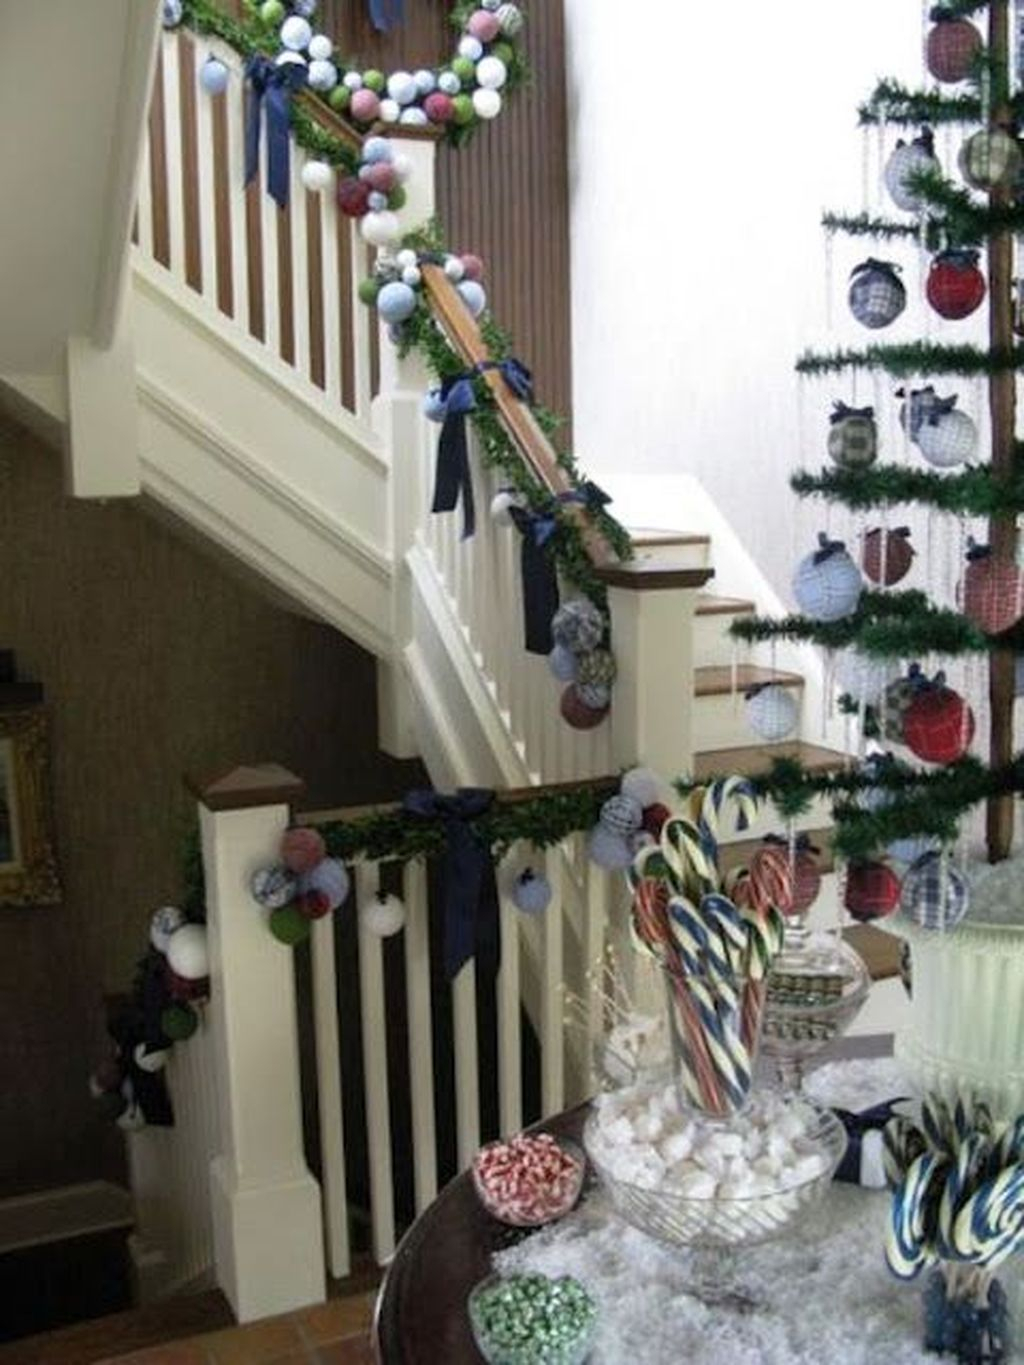 Charming Winter Staircase Design Ideas With Banister Ornaments To Try Asap 31